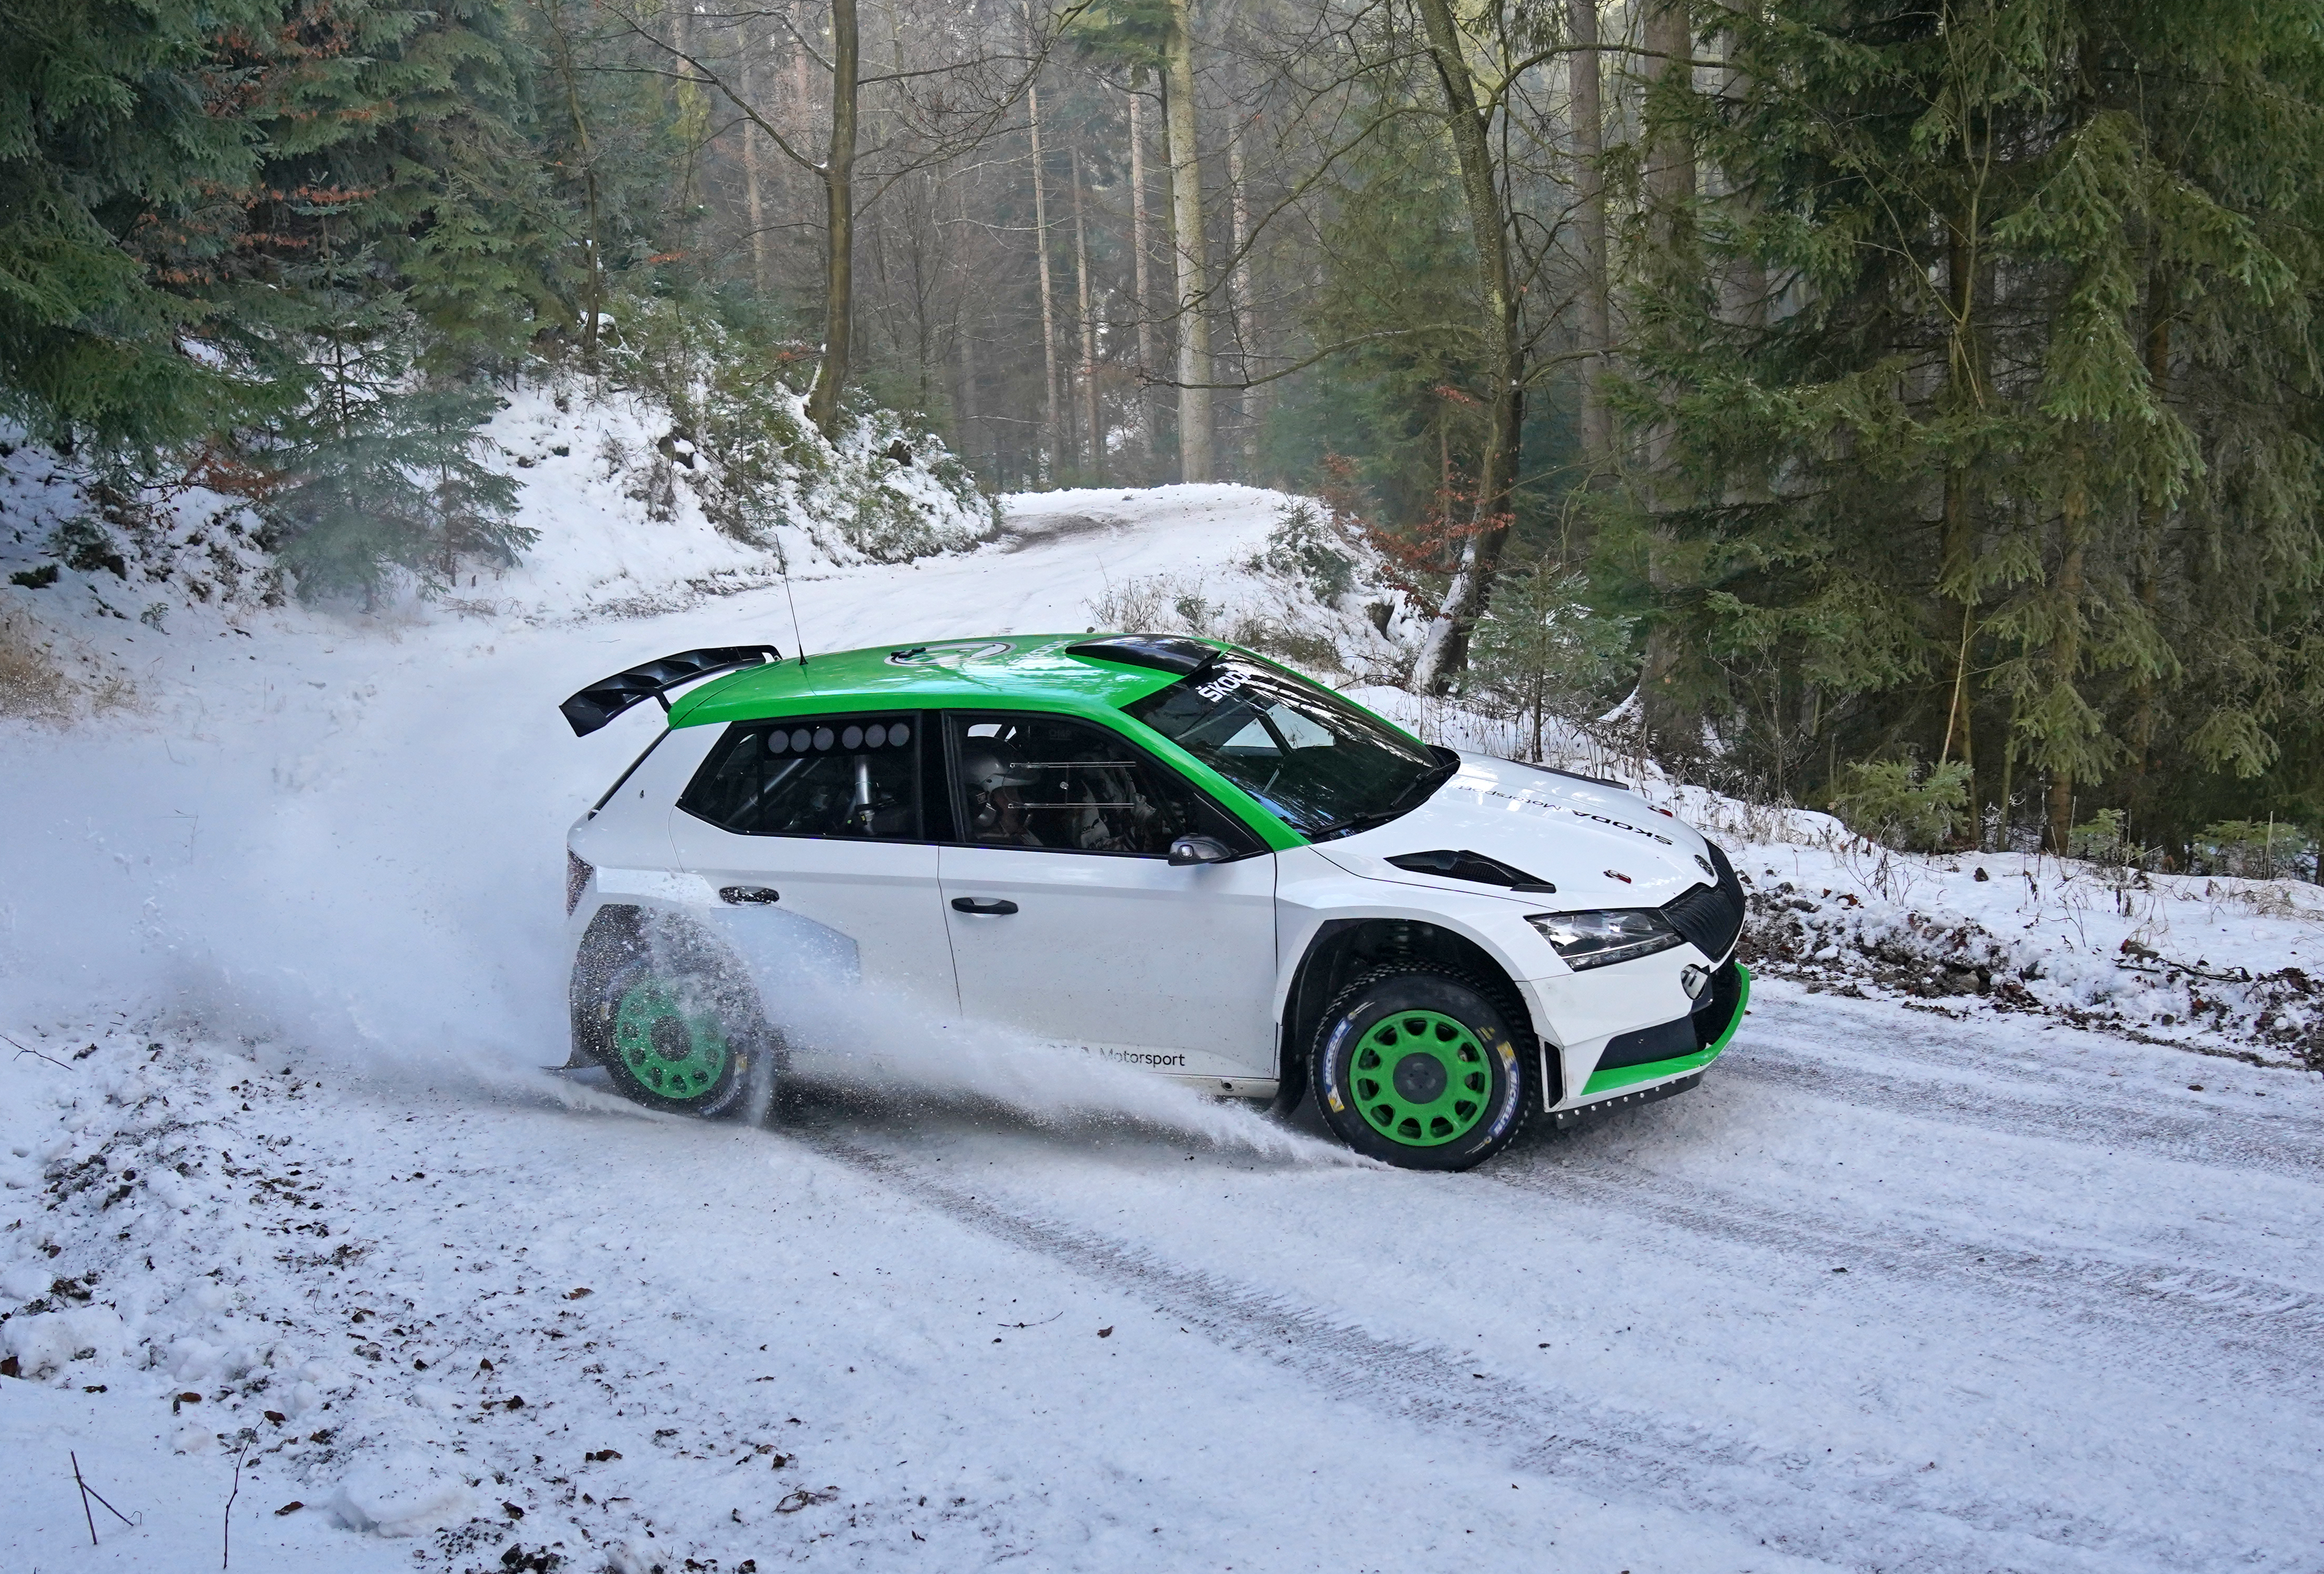 SKODA Motorsport cooperates with Oliver Solberg in WRC3 category of FIA World Rally Championship - Image 2